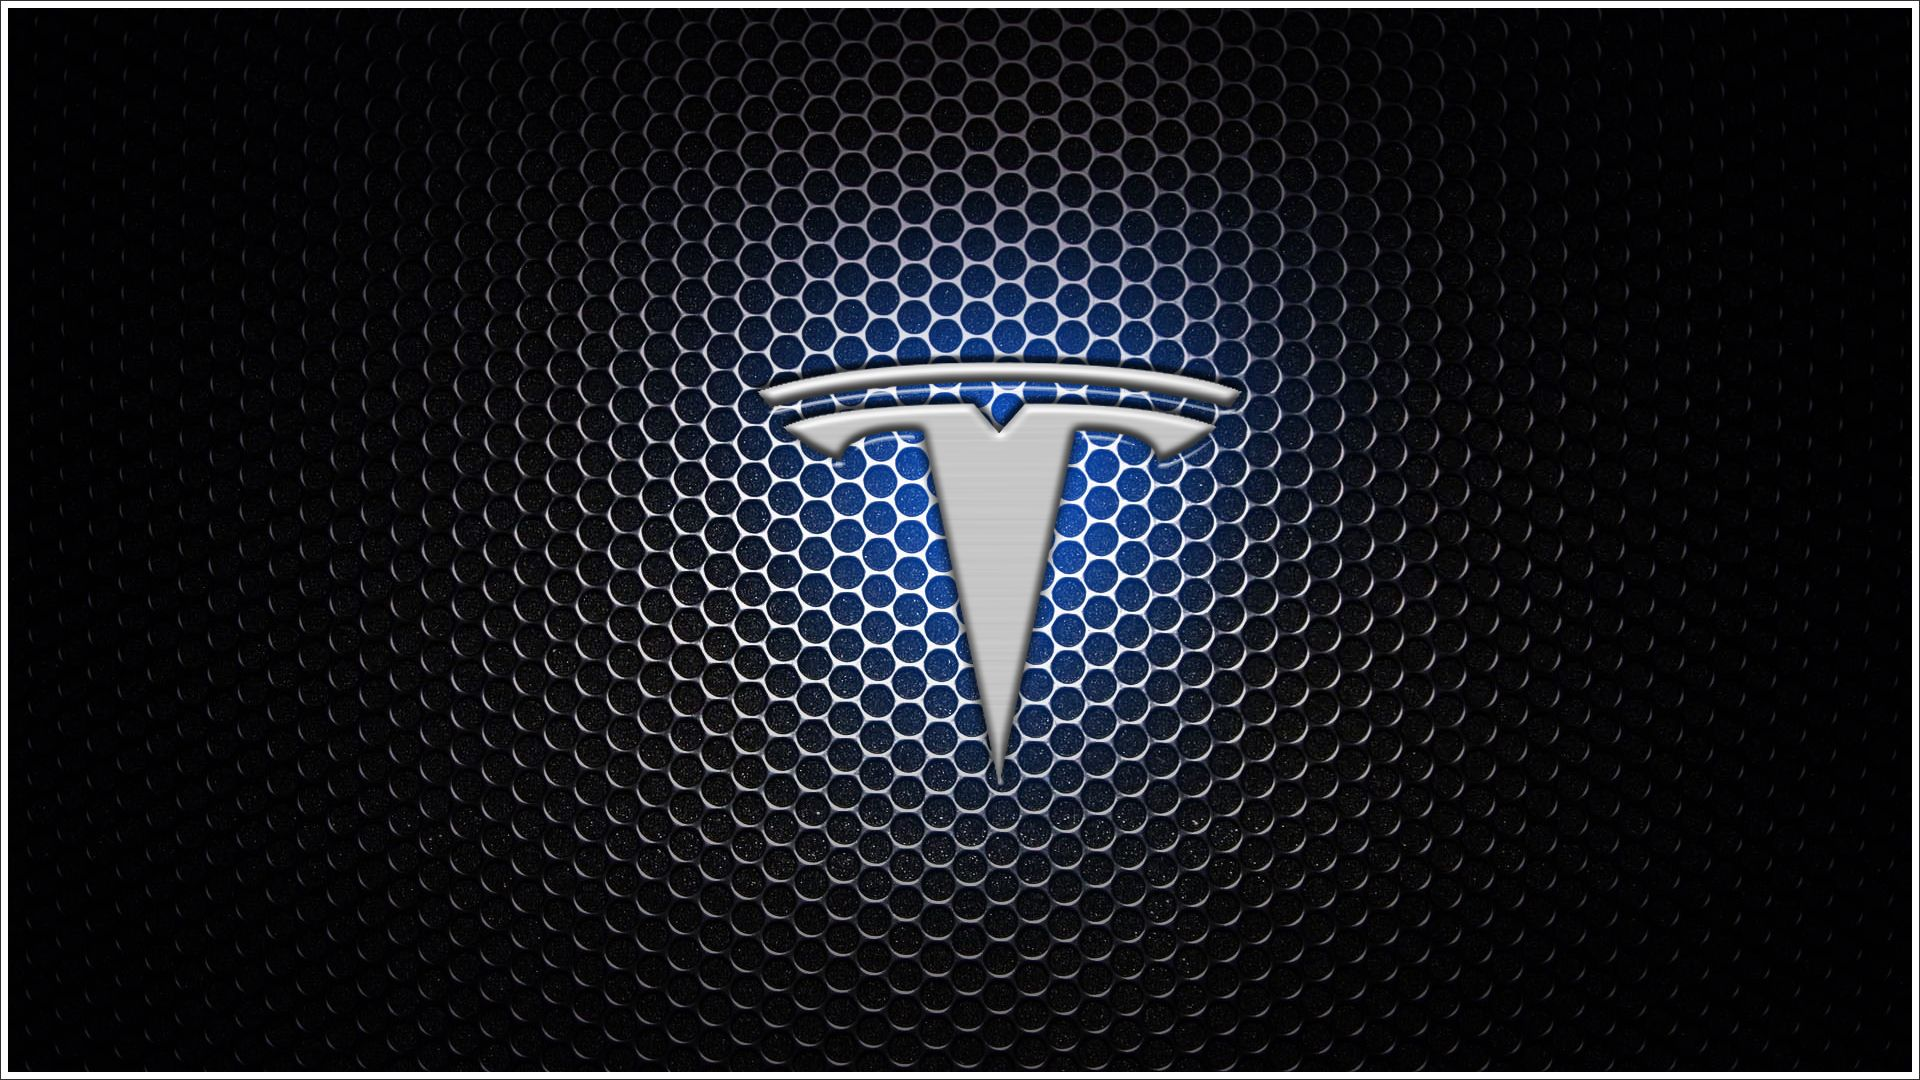 1920x1080 Cars Logo Wallpaper Best Of Tesla Logo Wallpapers Hd Backgrounds ...